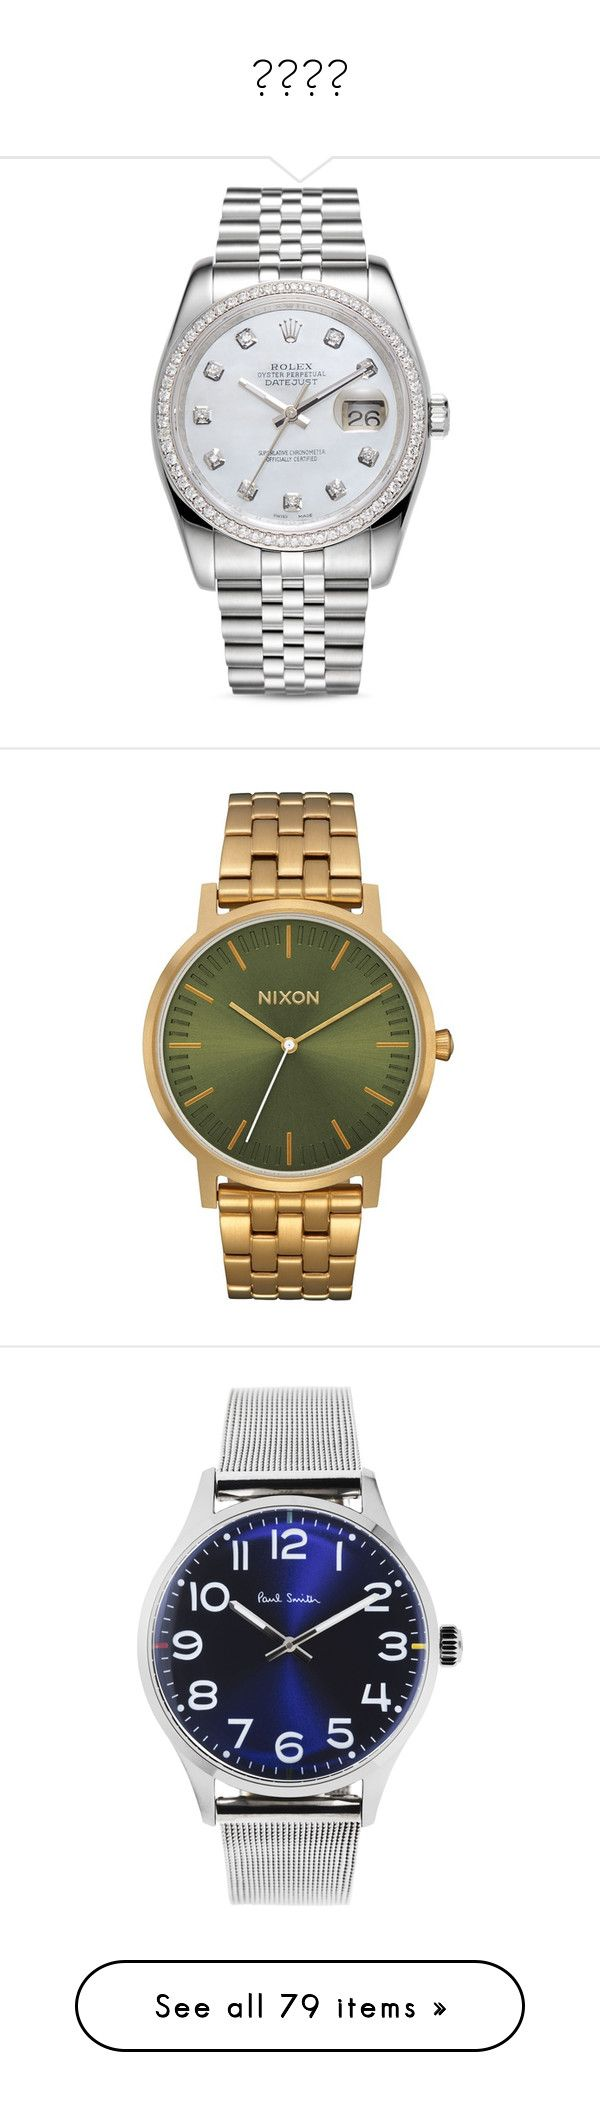 """Часы"" by konoshangela ❤ liked on Polyvore featuring jewelry, watches, rolex watches, pre owned watches, diamond watches, stainless steel jewelry, 18k watches, watch bracelet, nixon jewelry and metal watches"